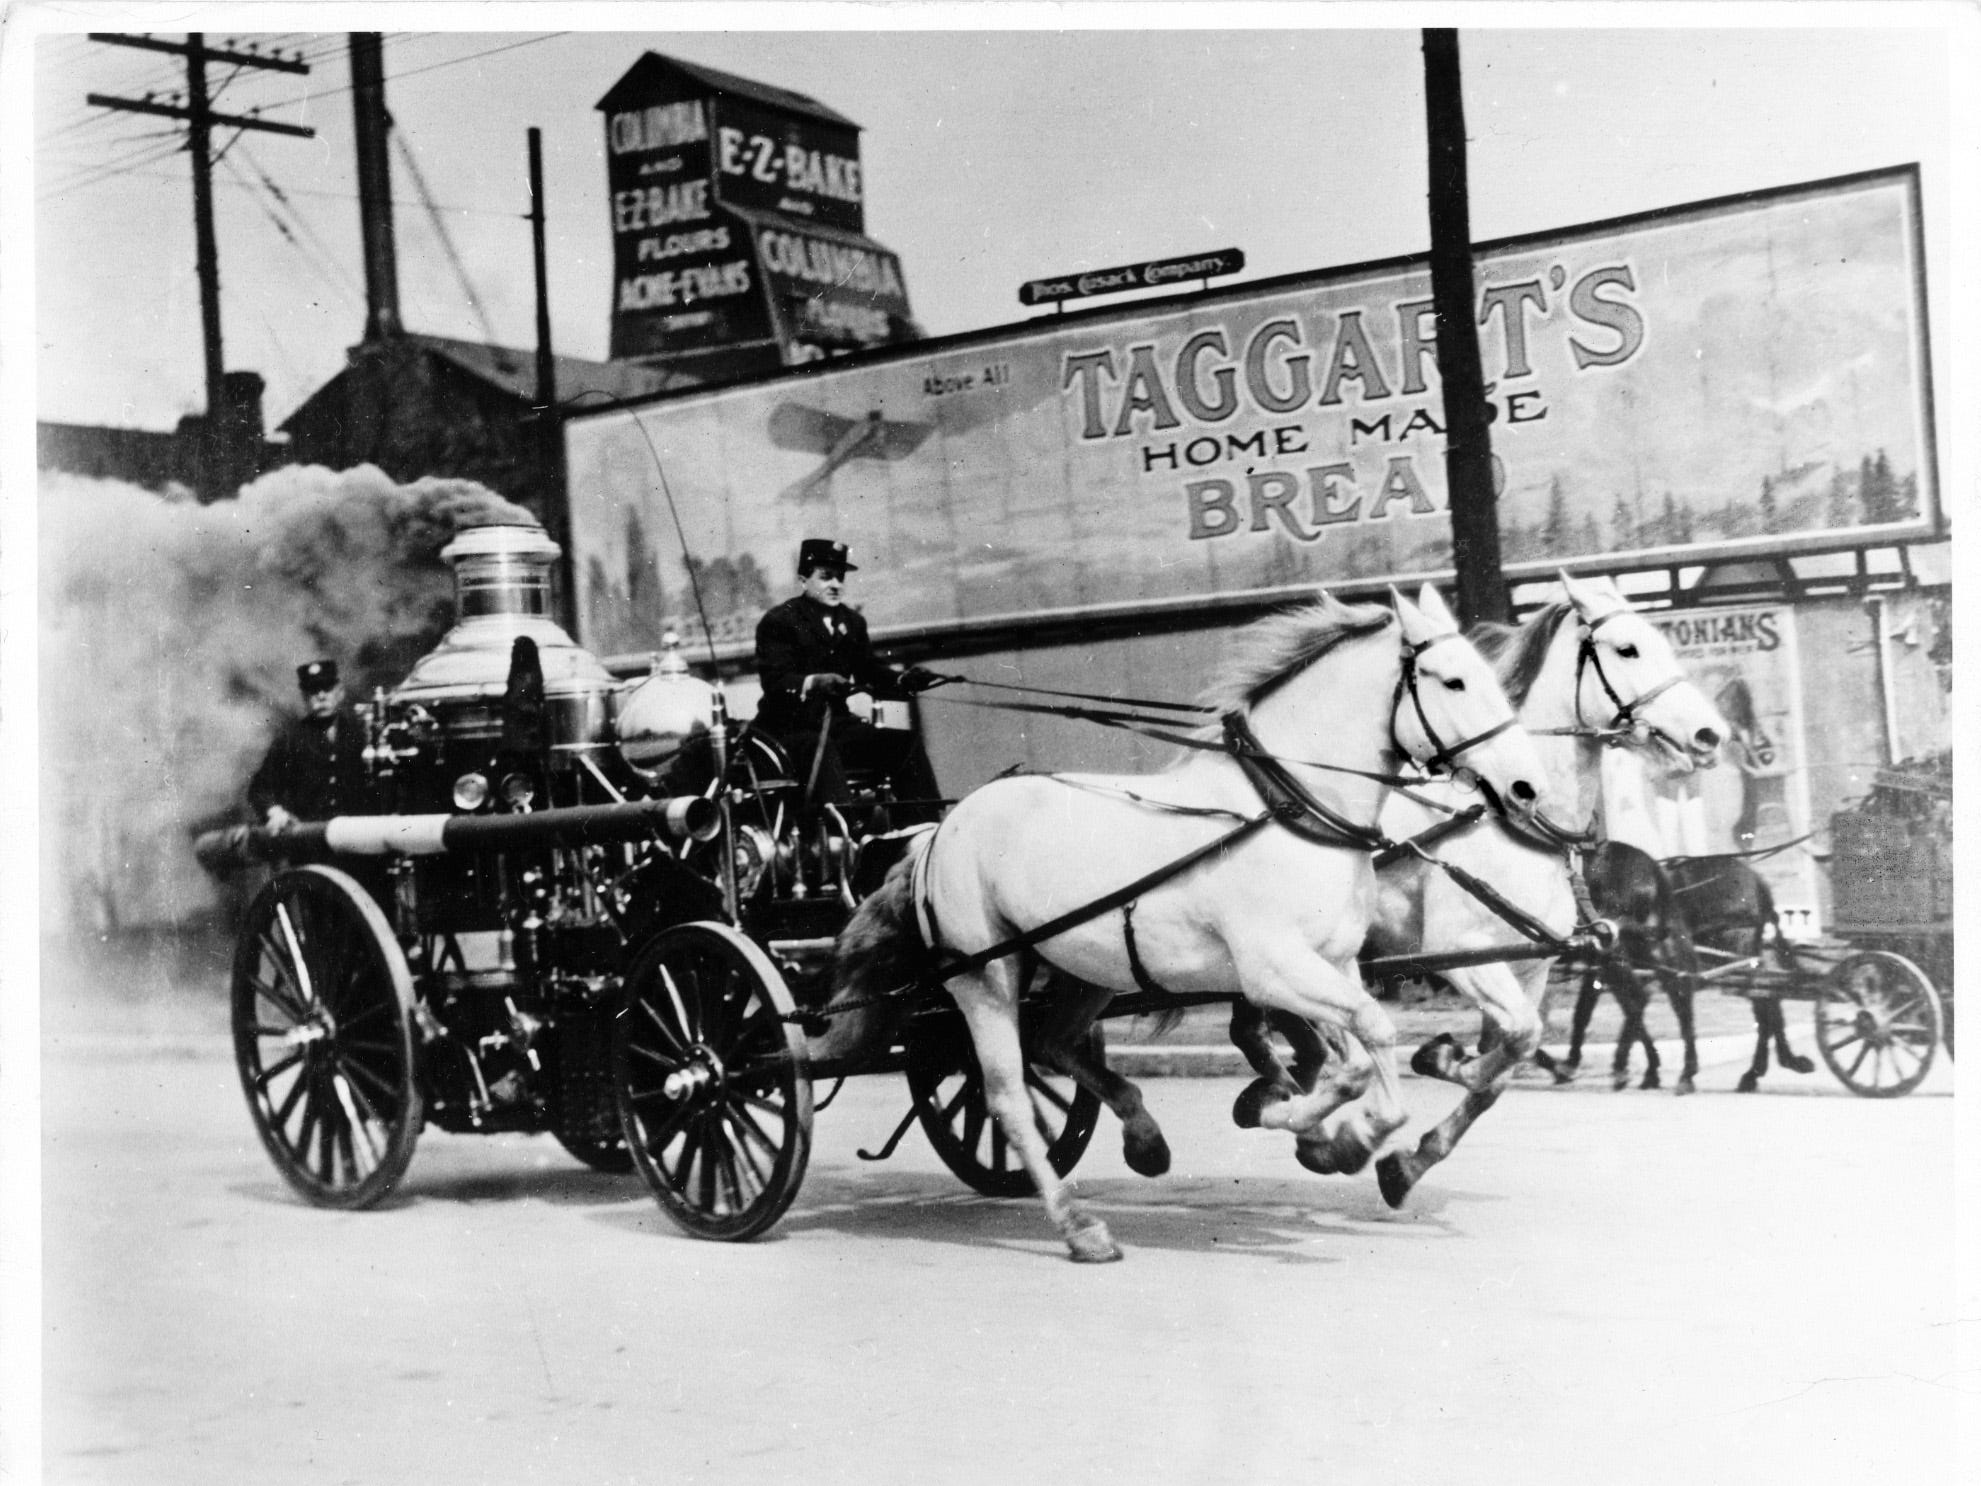 Firefighter Charles Gregory (right) drove one of the Indianapolis Fire DepartmentÕs Ahrens steam engines, housed at the old No. 6 station, on a simulated fire run down West Washington Street near Blackford Street in 1911. Riding in the back was engineer John Stake. The photograph appeared in the April 22, 1911 edition of The Indianapolis News, accompanying a poem titled, ÔÔWhen the SixÕs Grays Are Out.ÕÕ